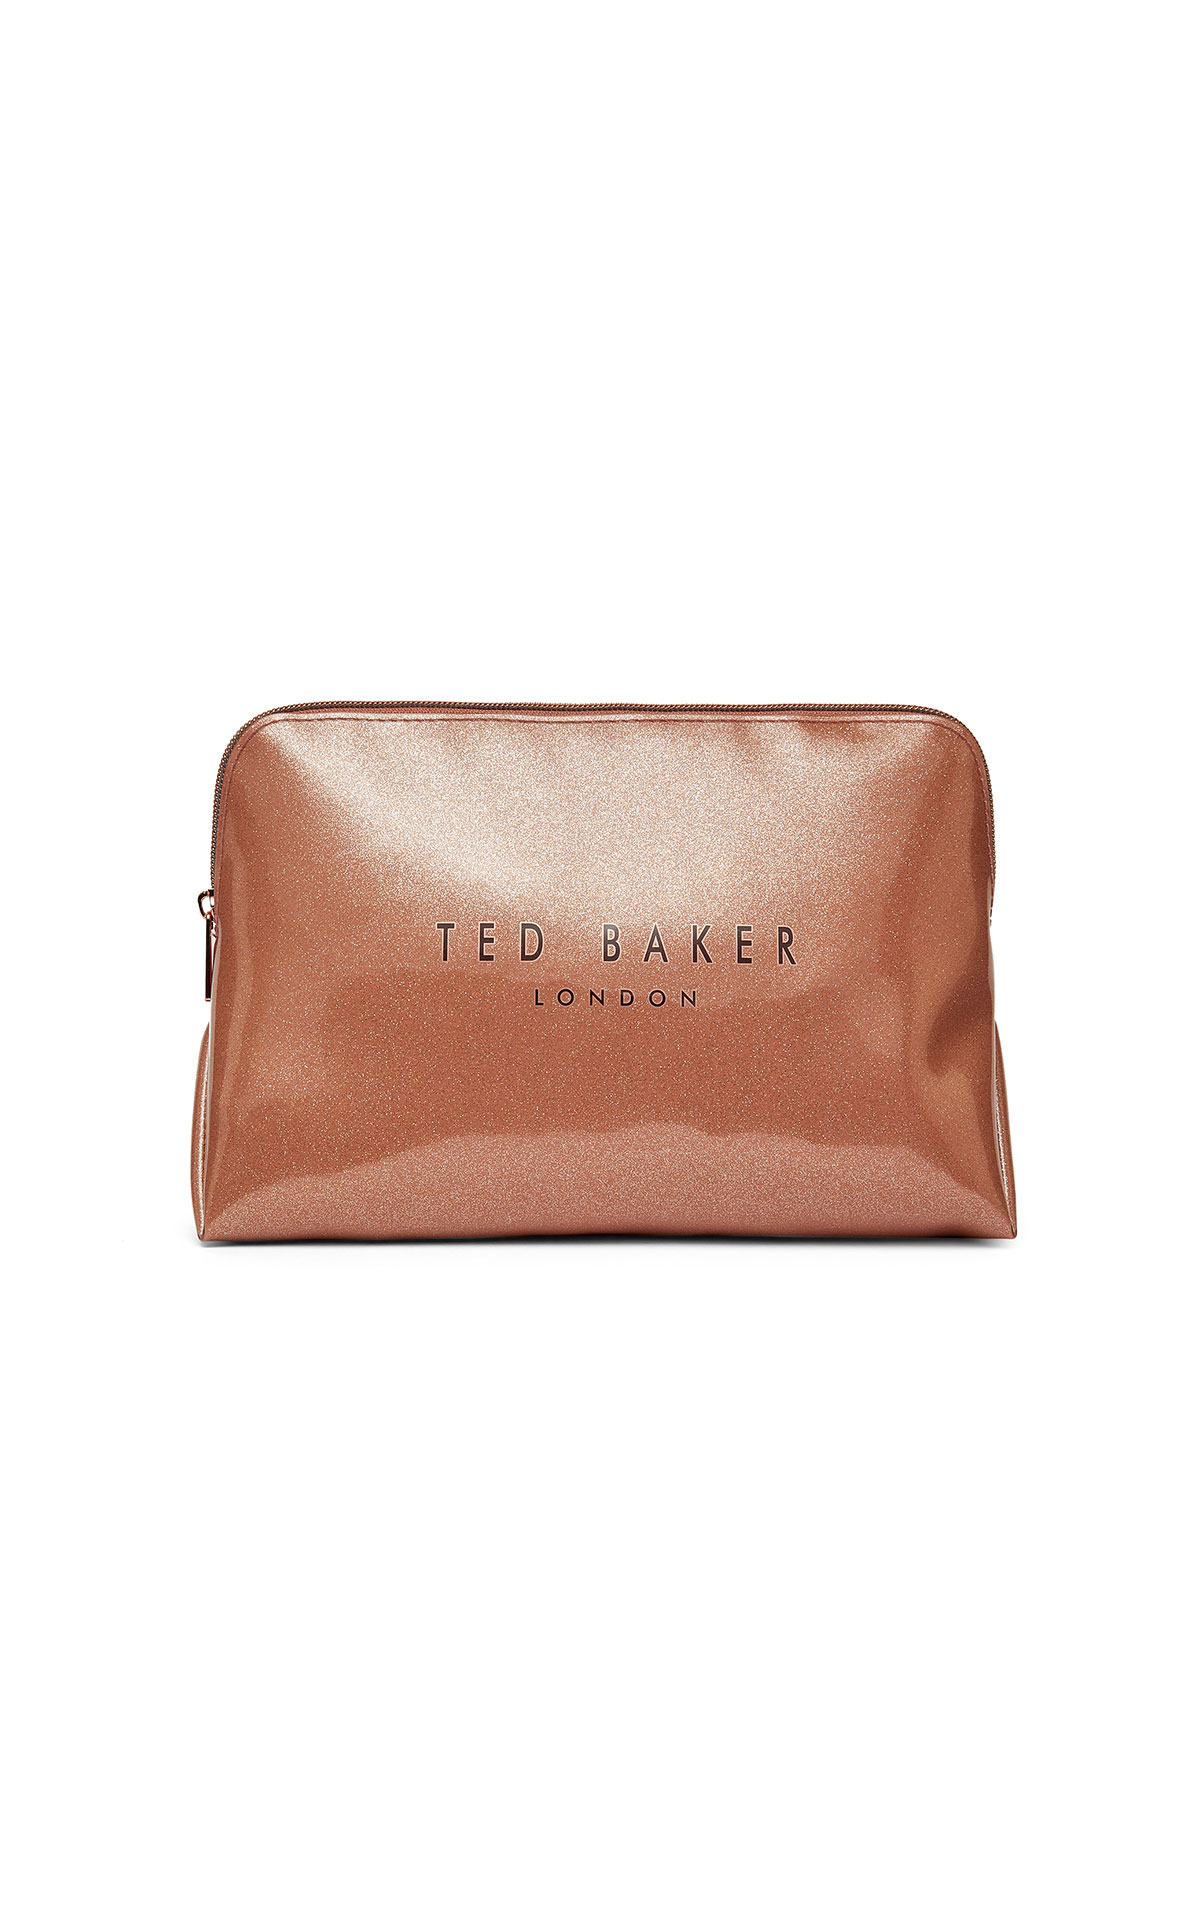 Ted Baker's rose gold glitter washbag at The Bicester Village Shopping Collection